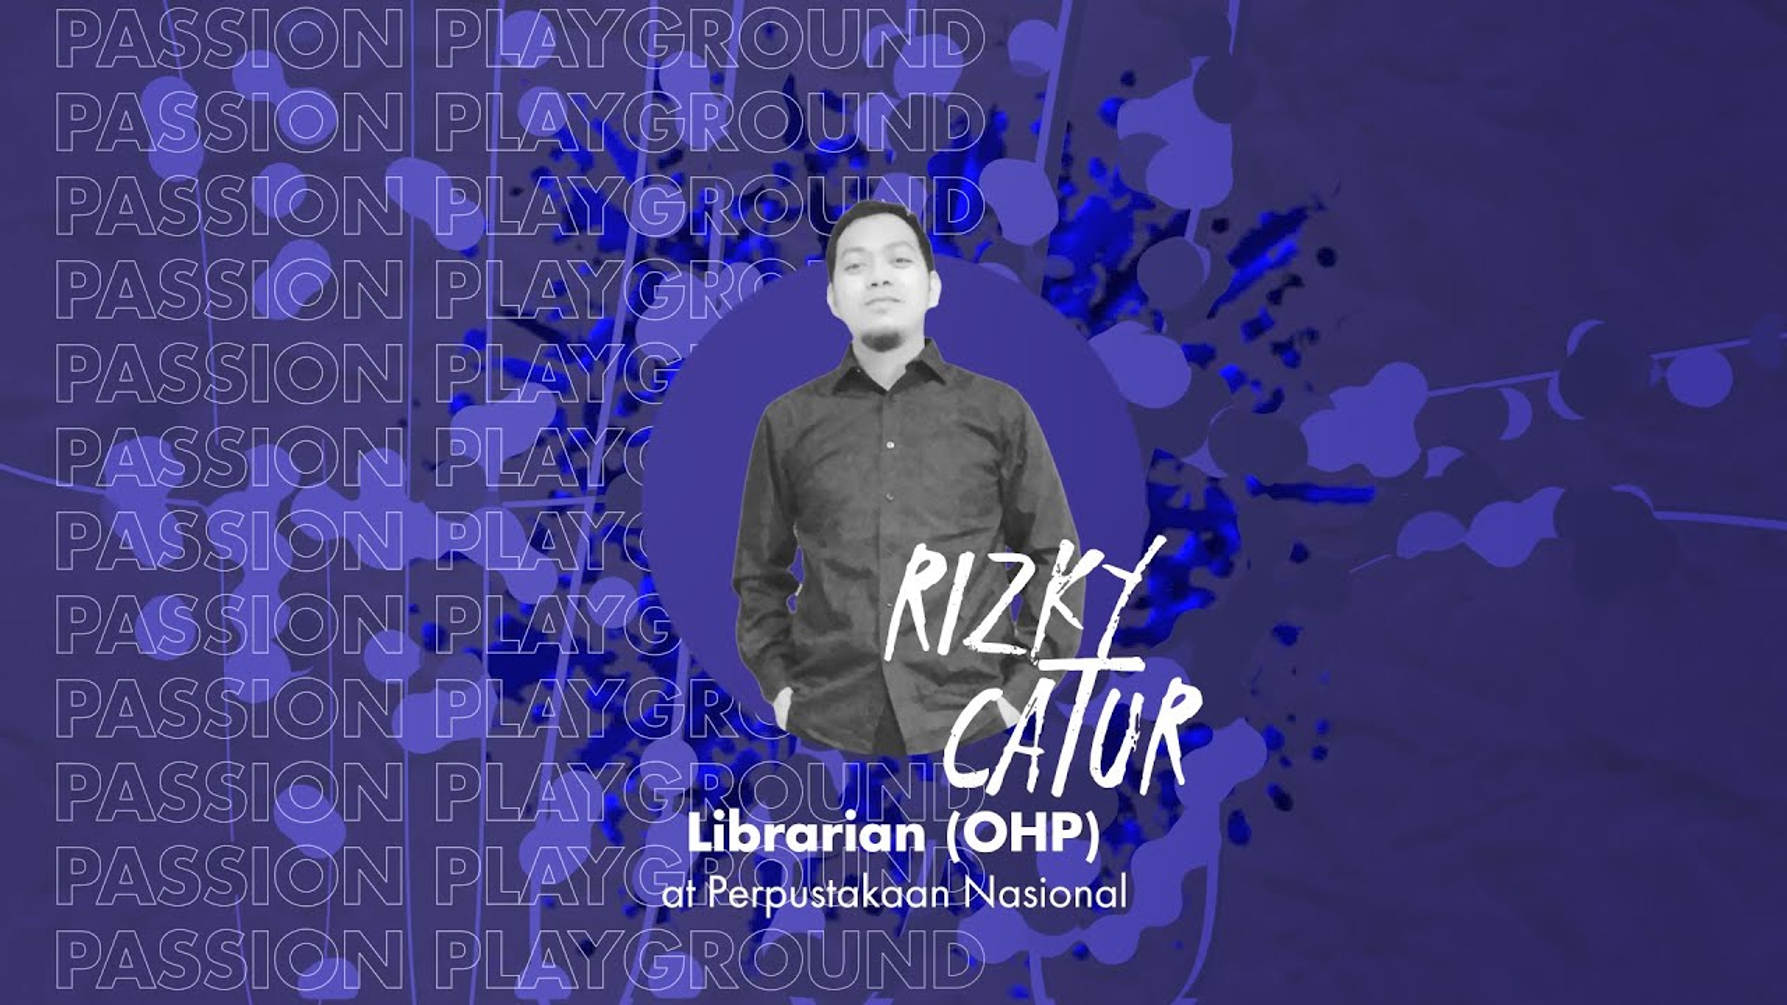 Librarian (OHP) with Rizky Catur